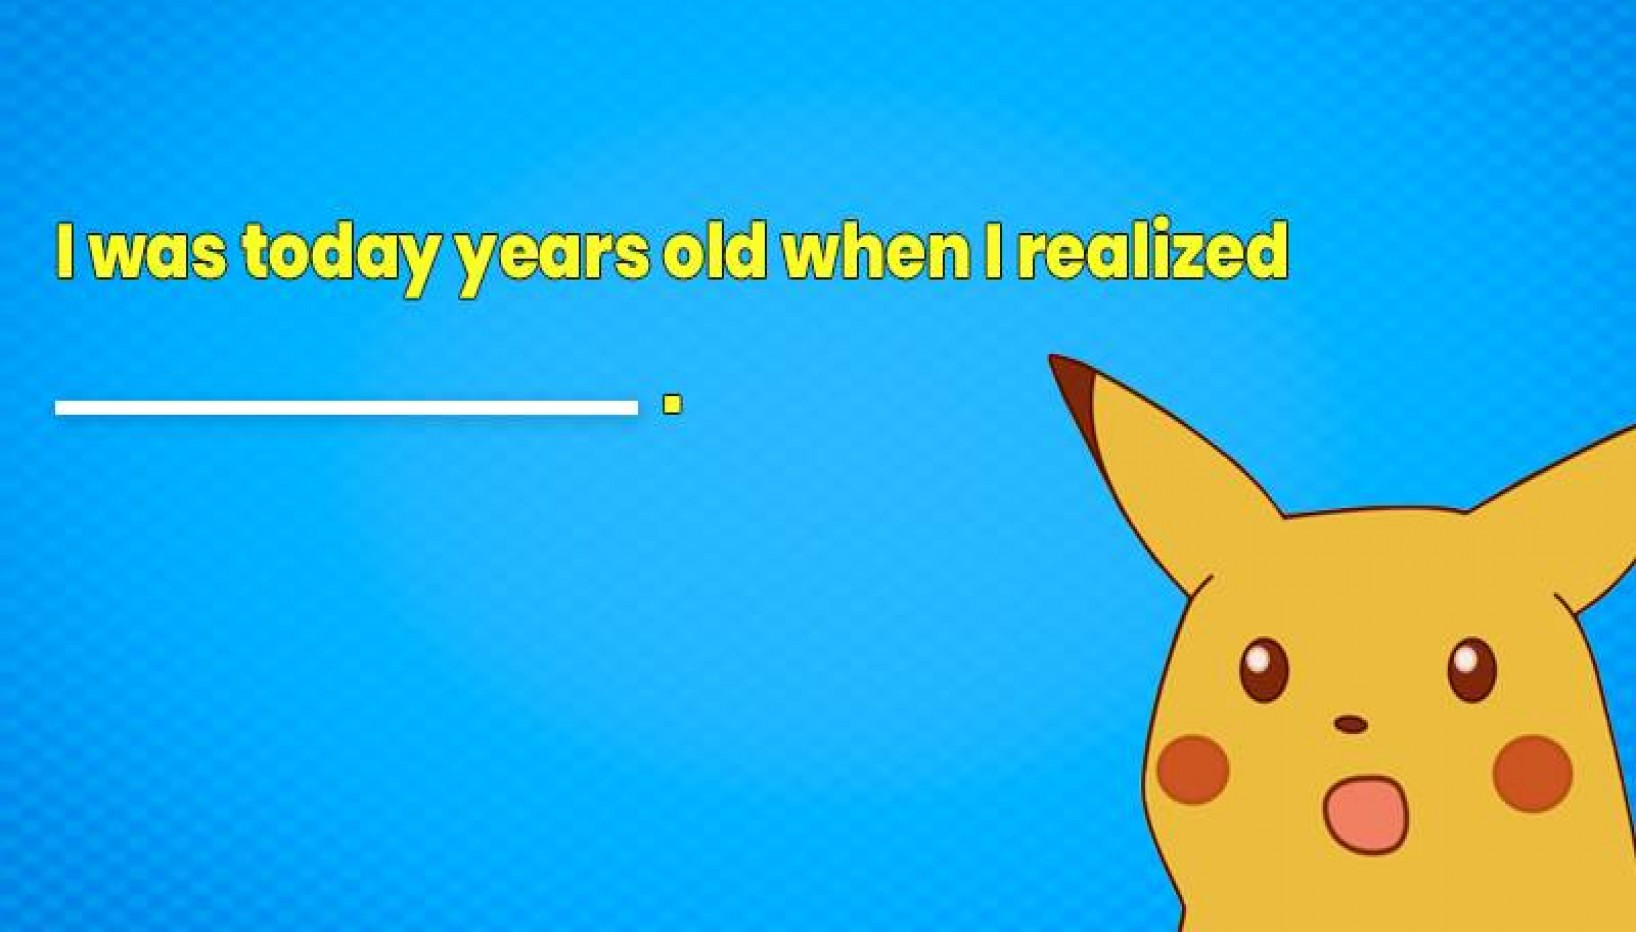 20 Things People Realized When They Were 'Today Years Old'